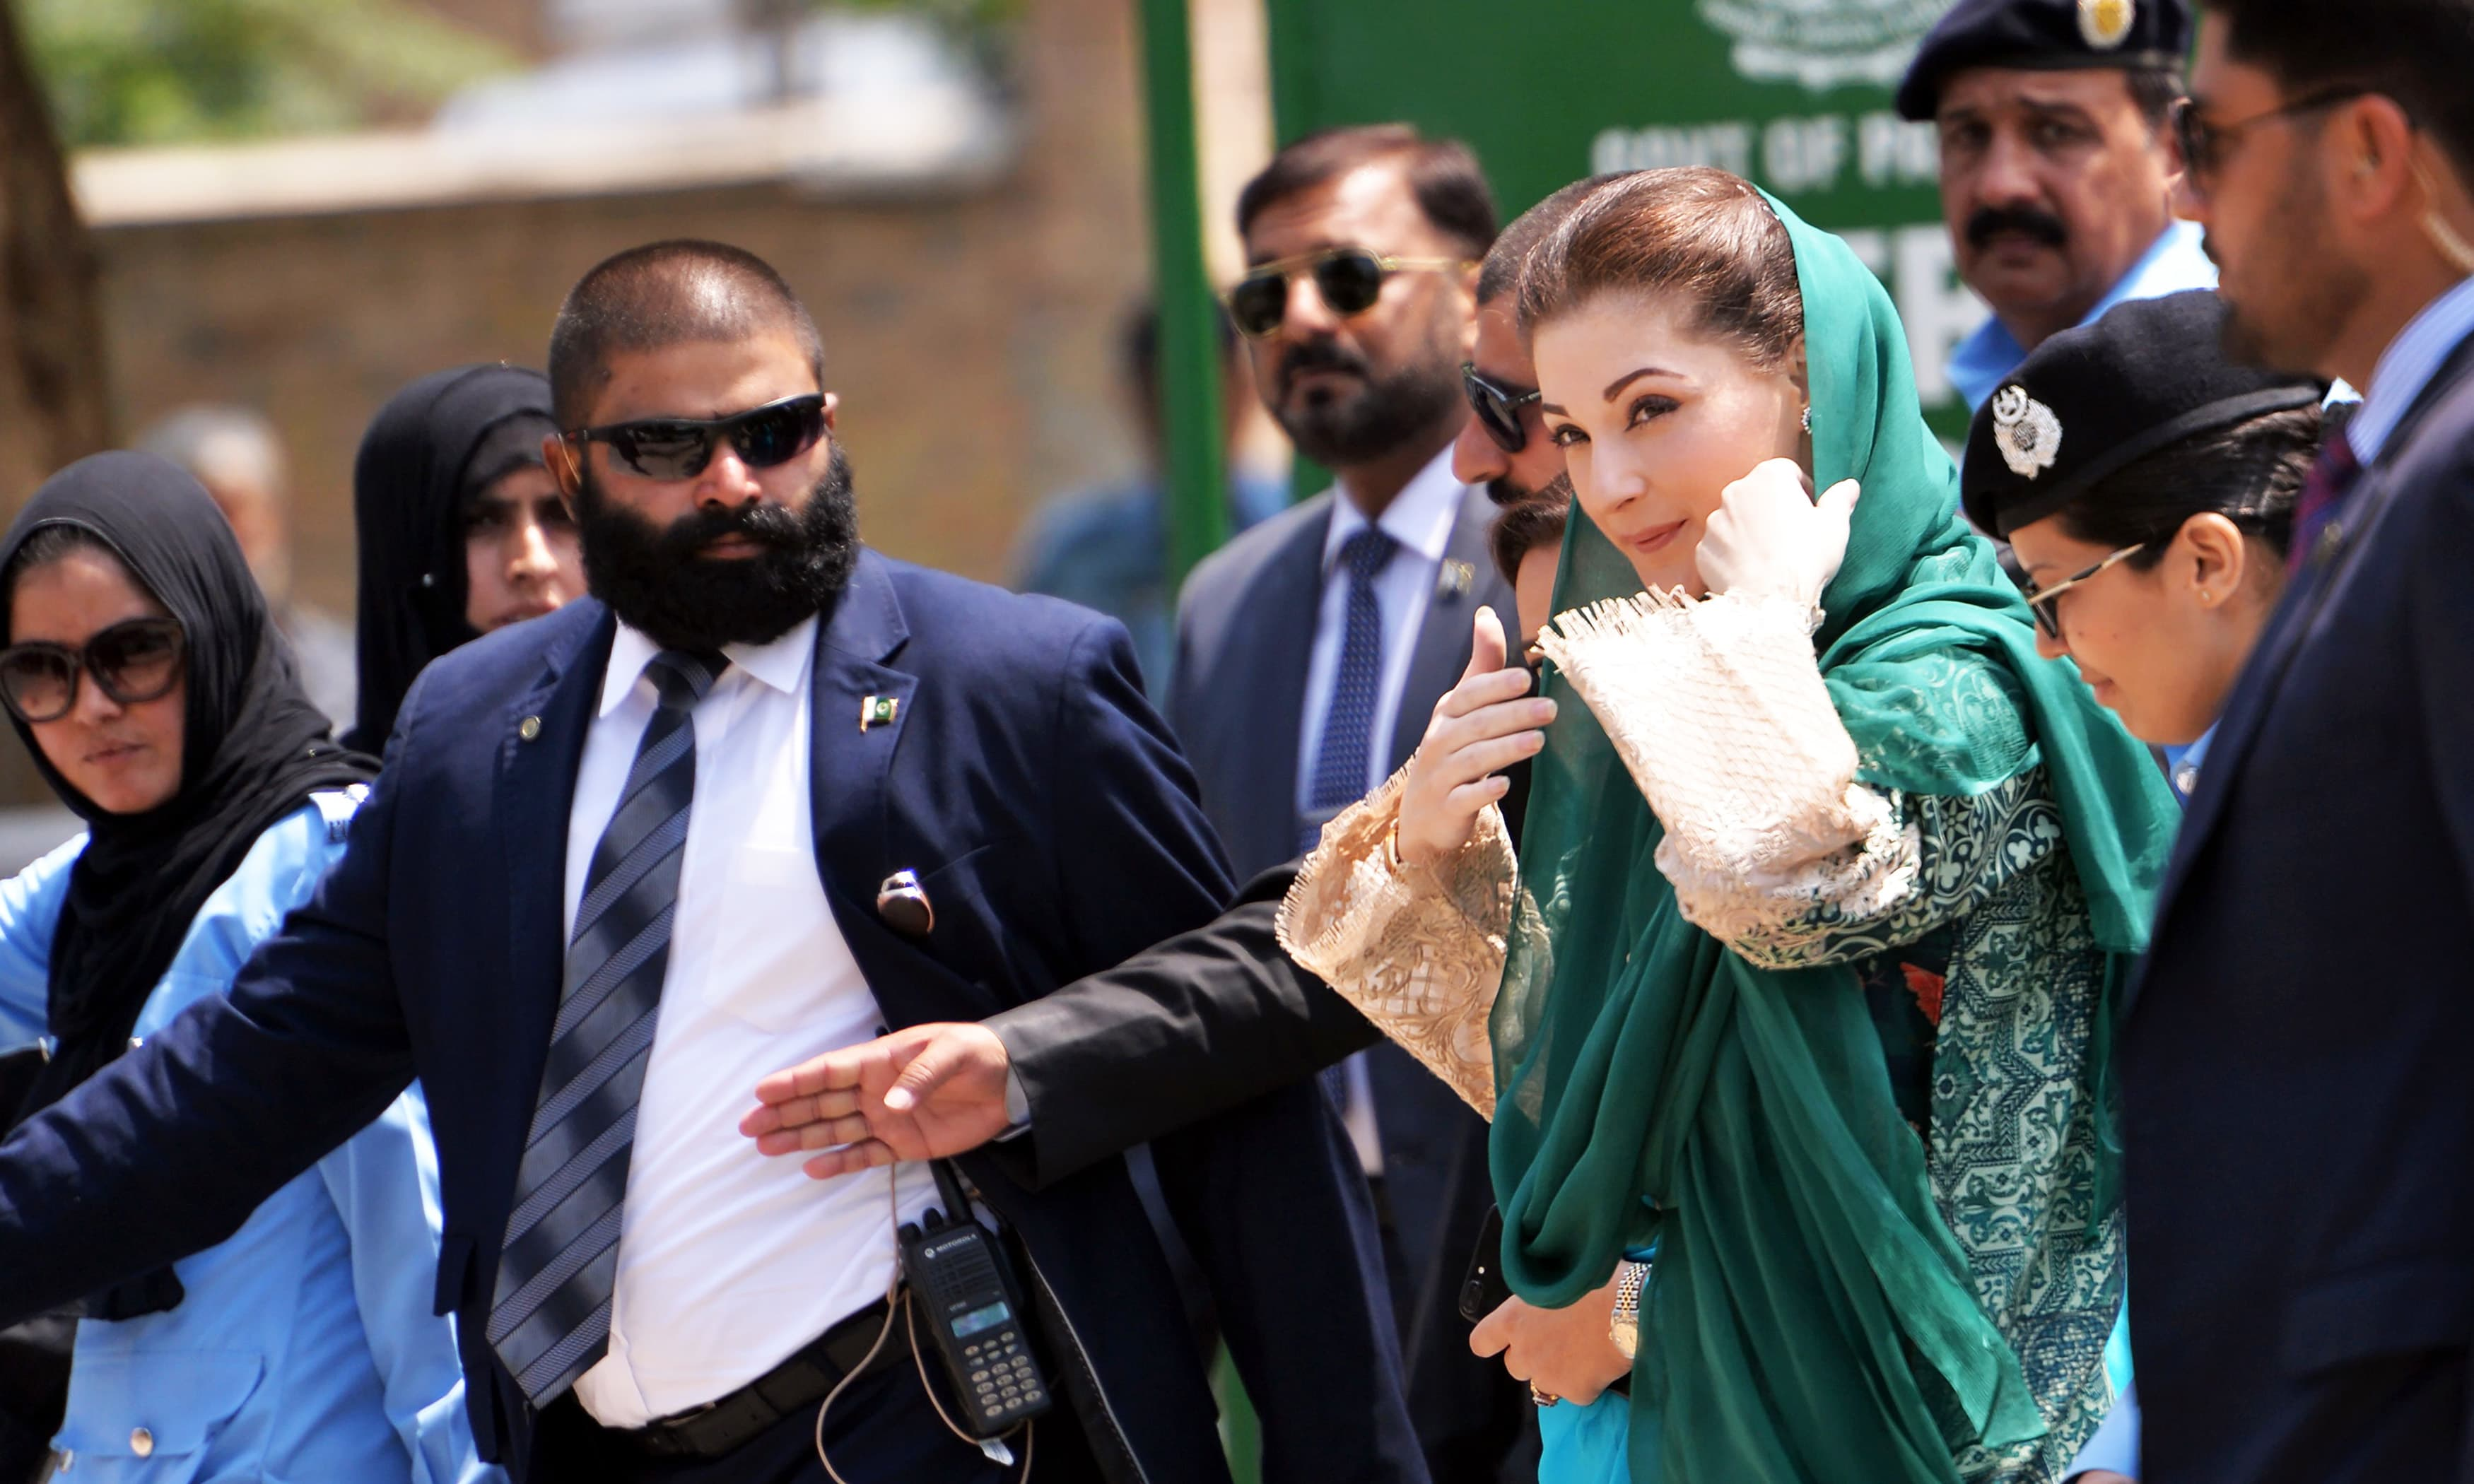 Maryam Nawaz arrives to appear before the anti-corruption commission. —AFP